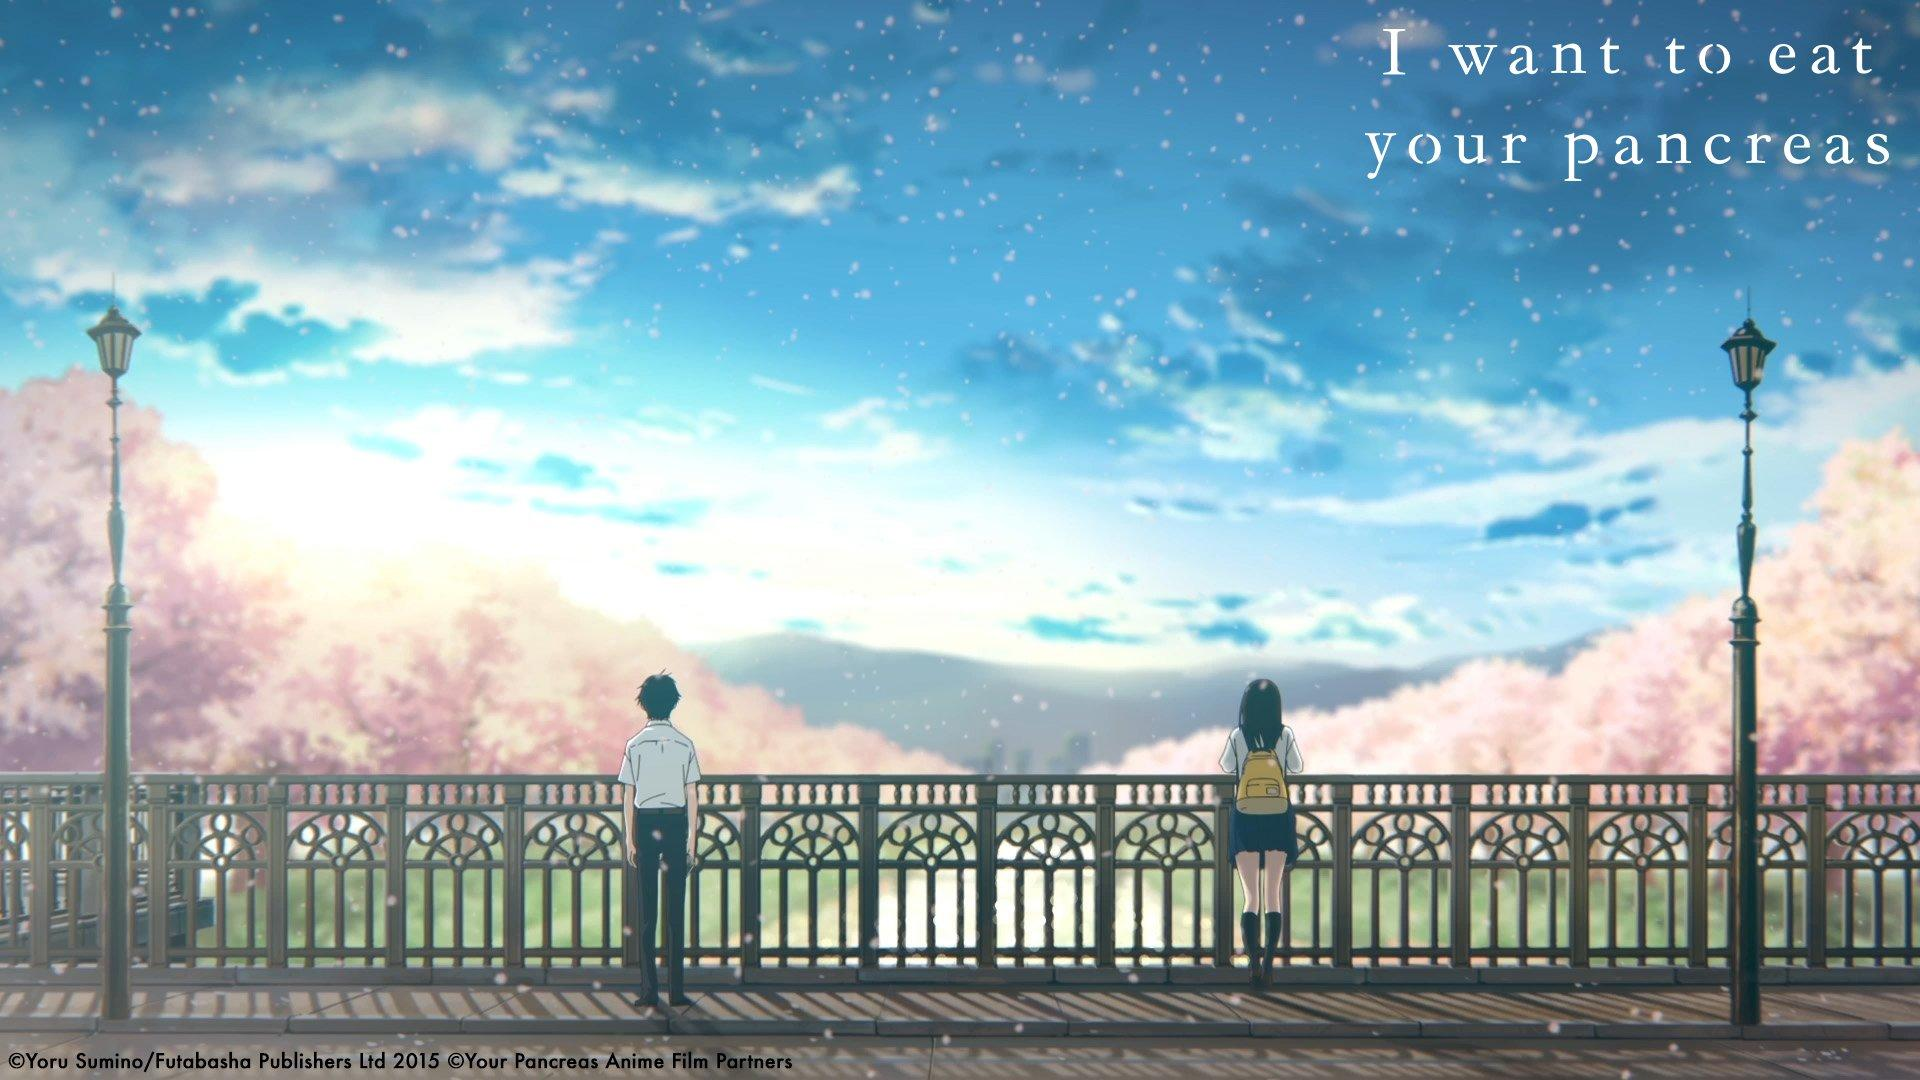 Aniplex USA على تويتر: [I want to eat your pancreas] is a